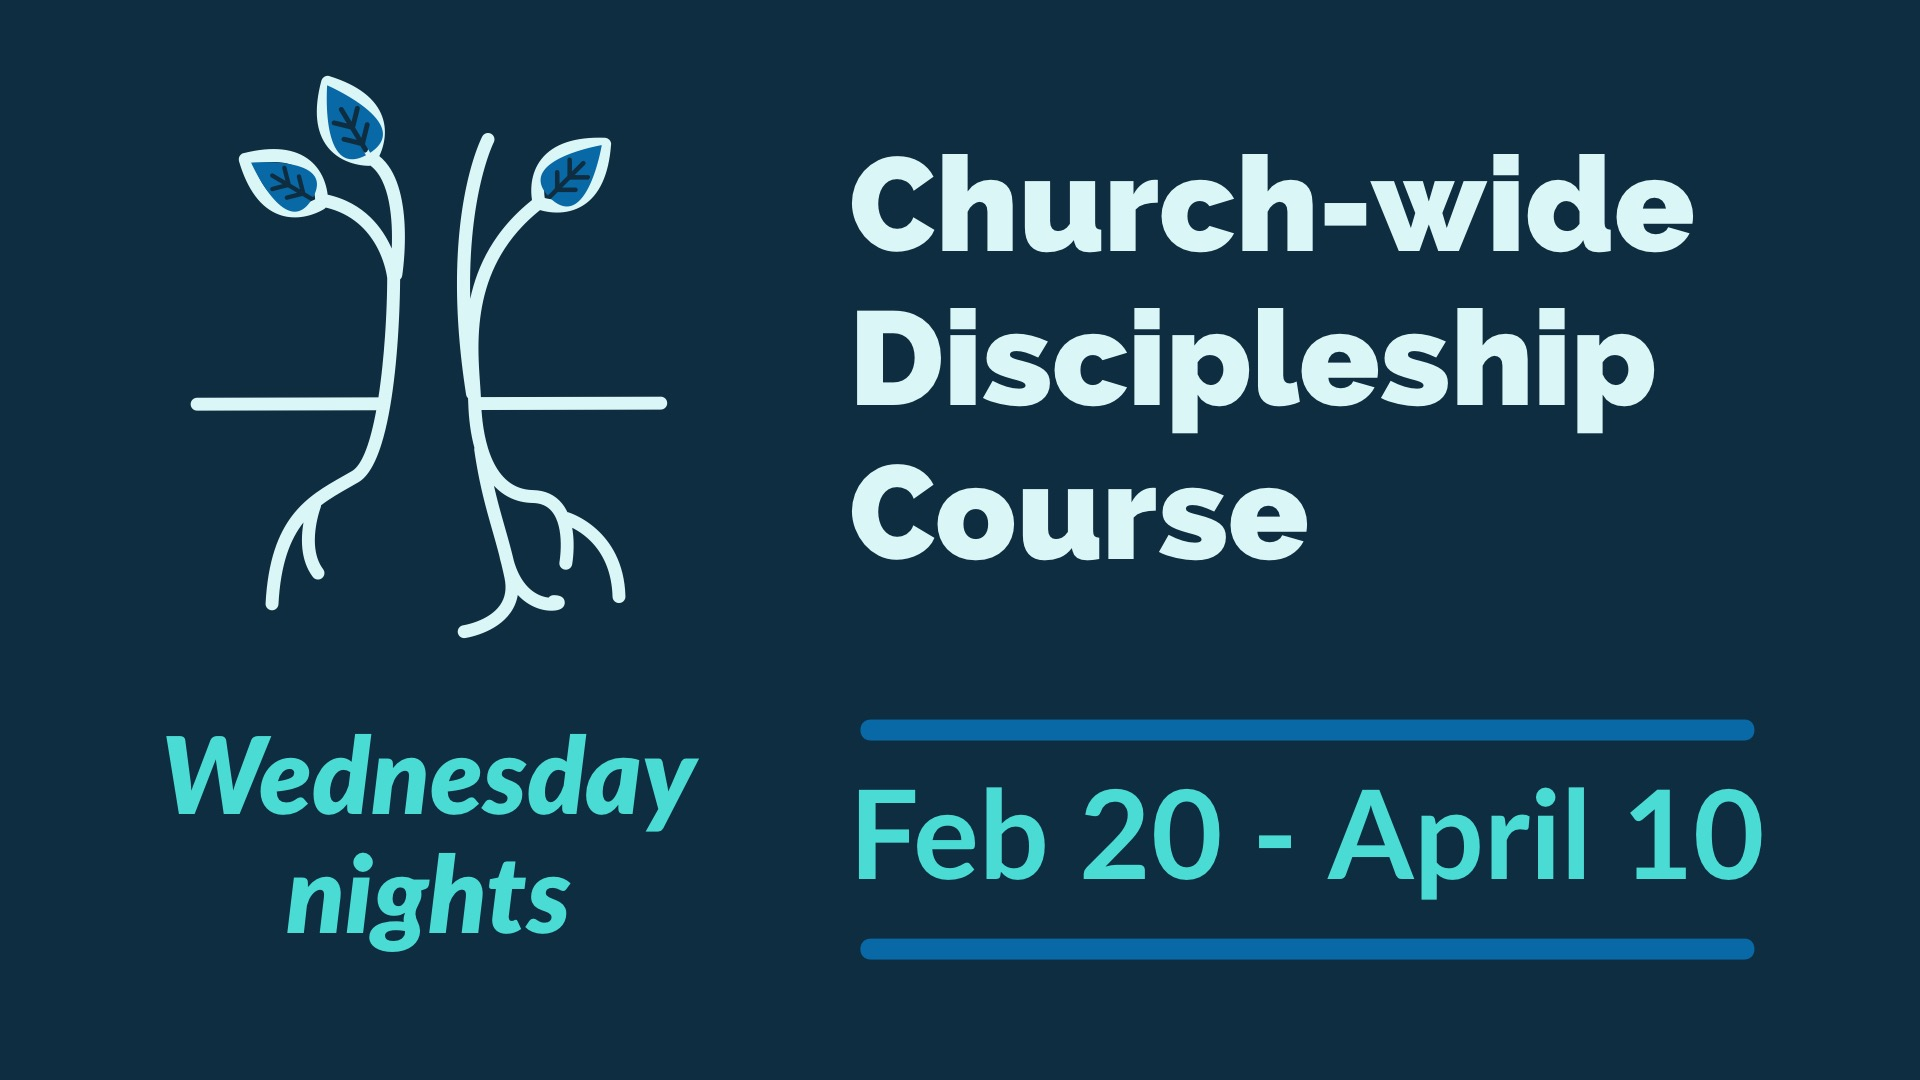 Discipleship Course spring gathering space image